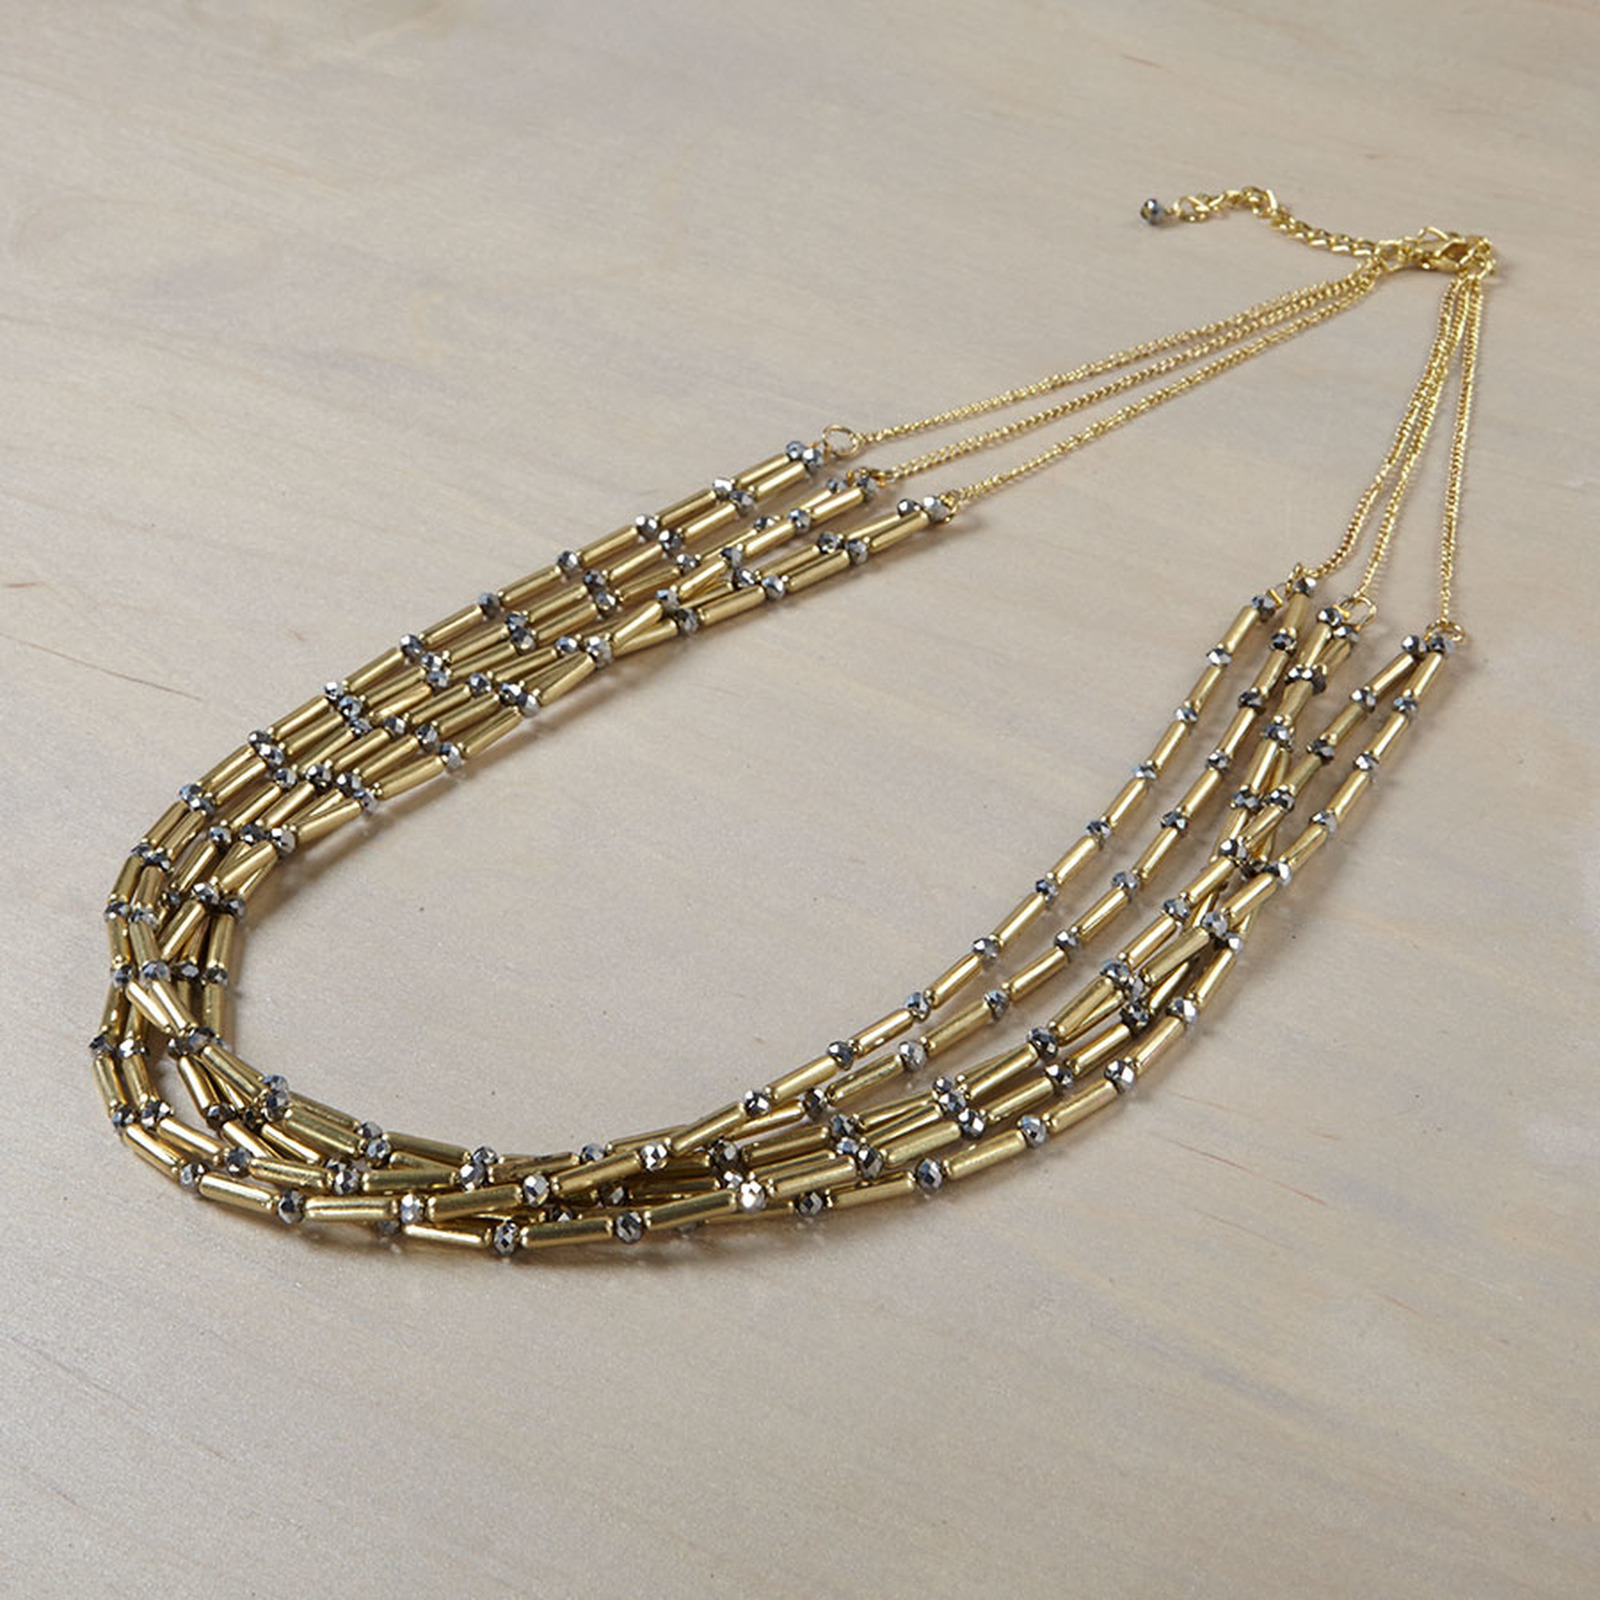 Gold Tubular Statement  Necklace w hematite bead accents